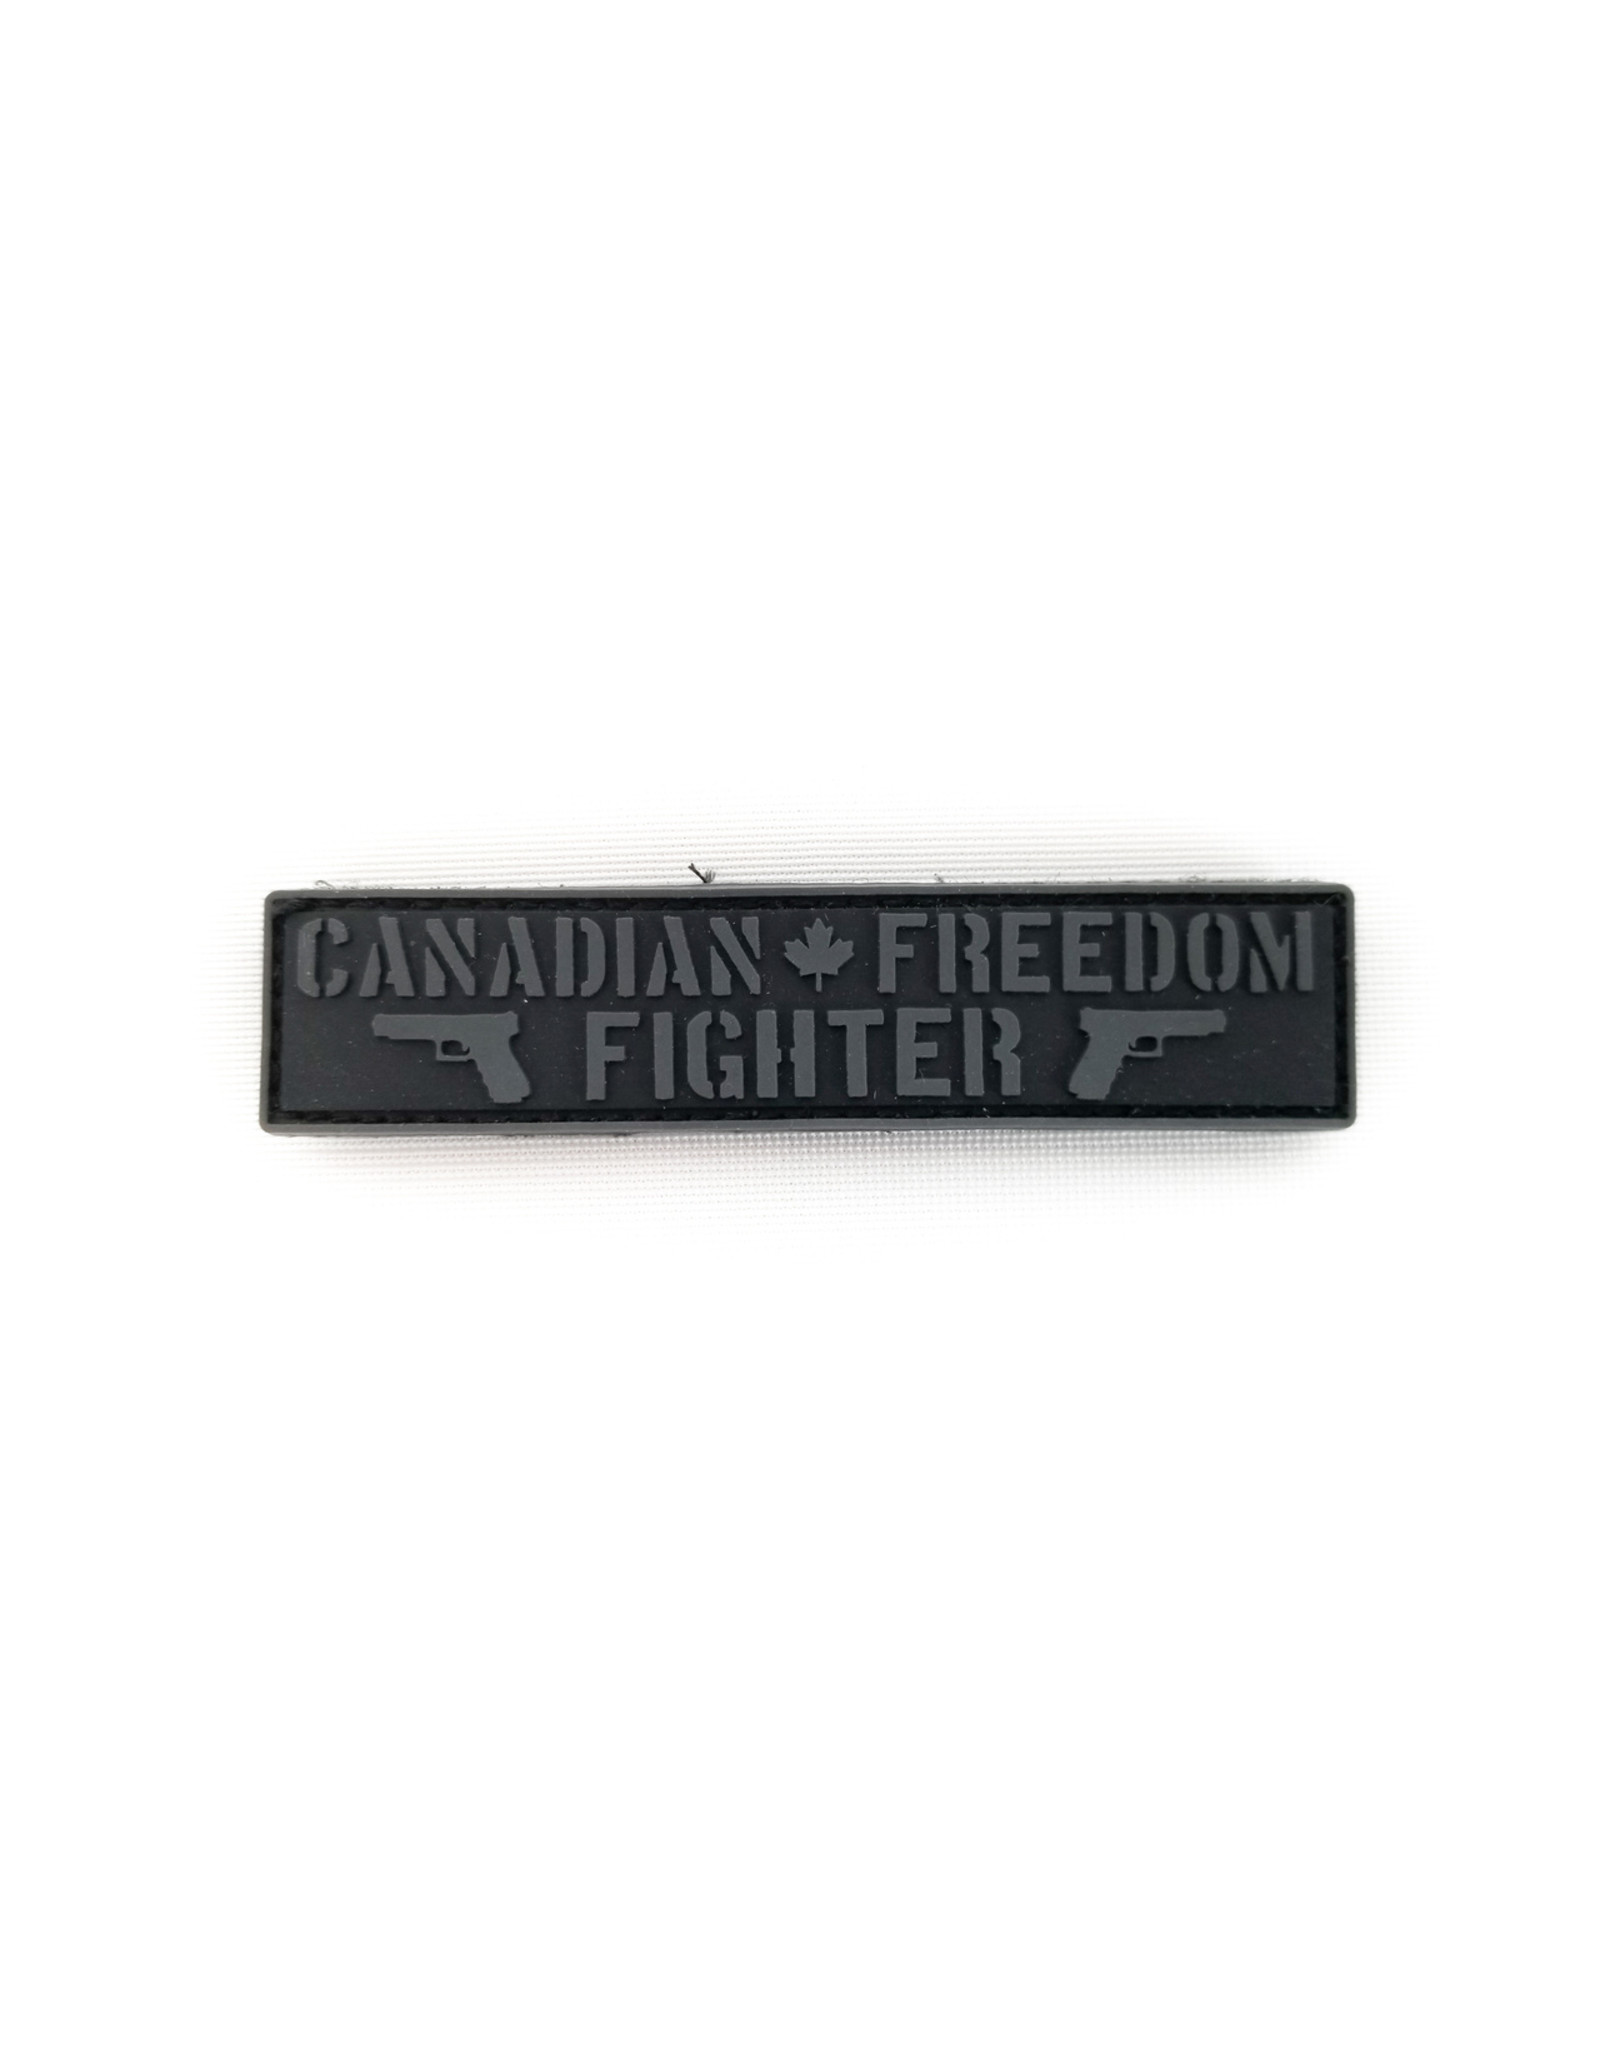 TIC Patch - FREEDOM FIGHTER BKG